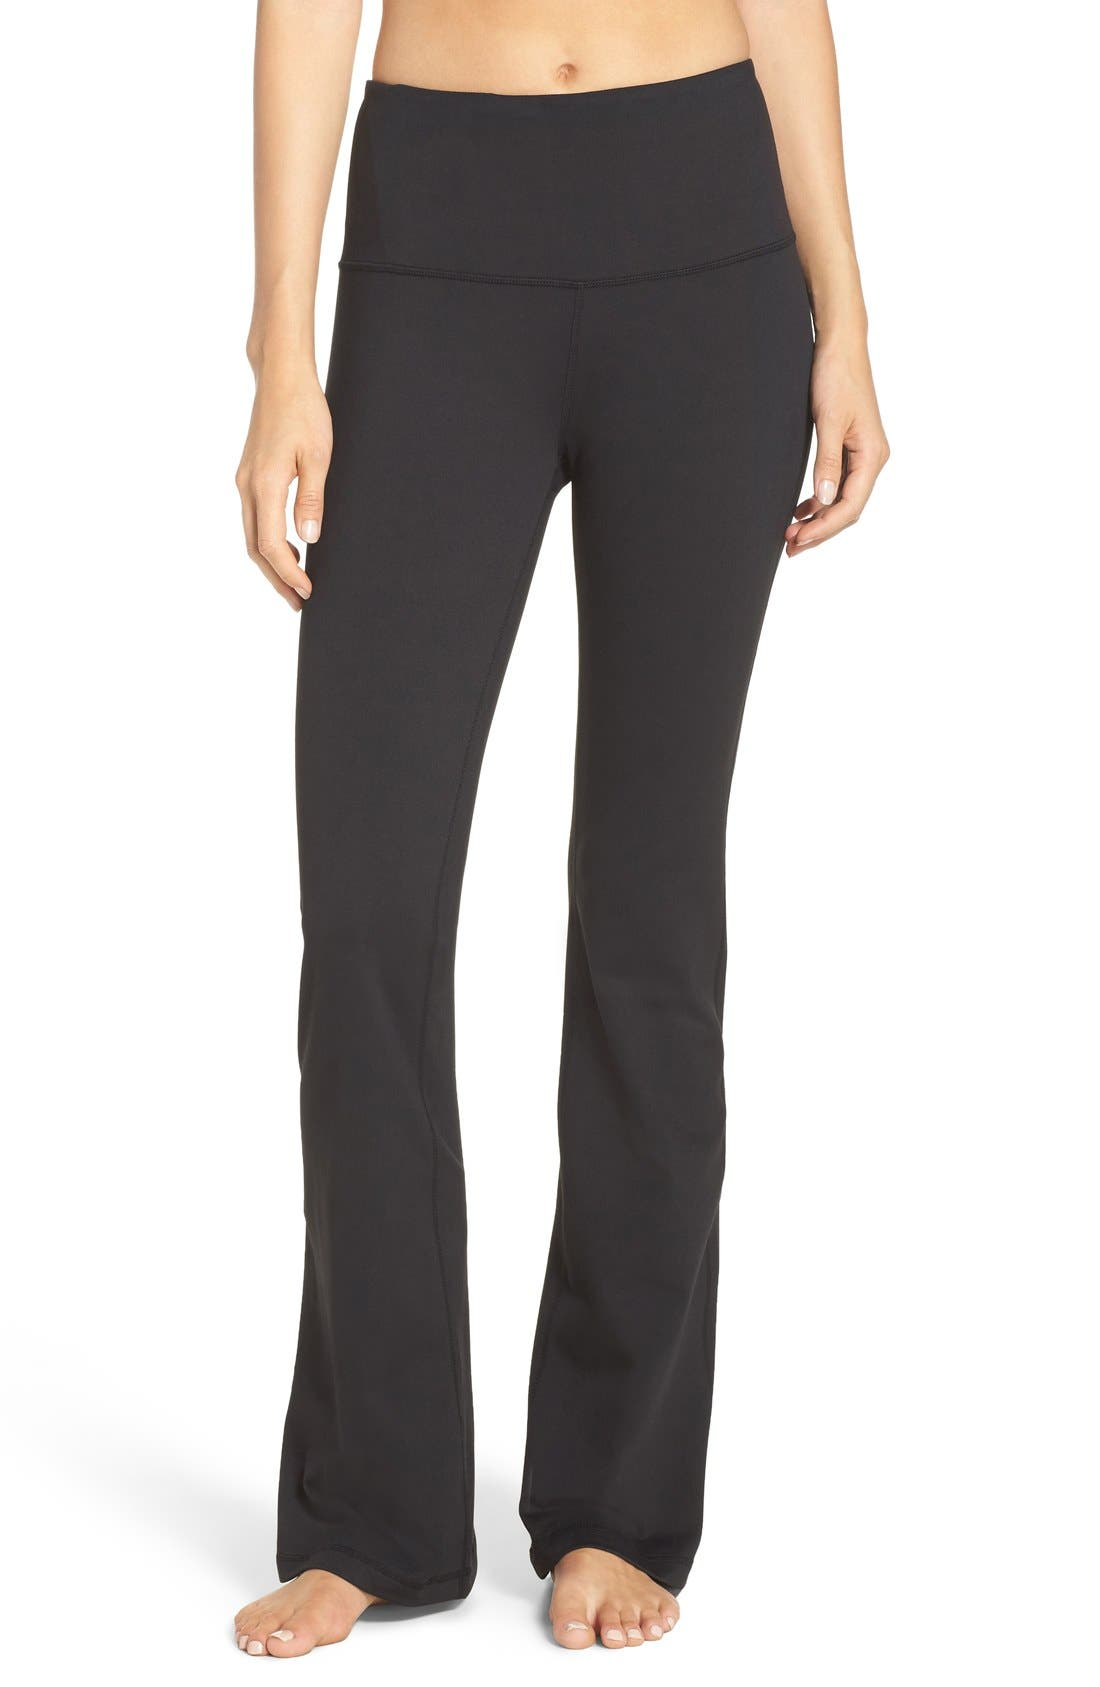 Zella 'Barely Flare Booty' High Waist Pants